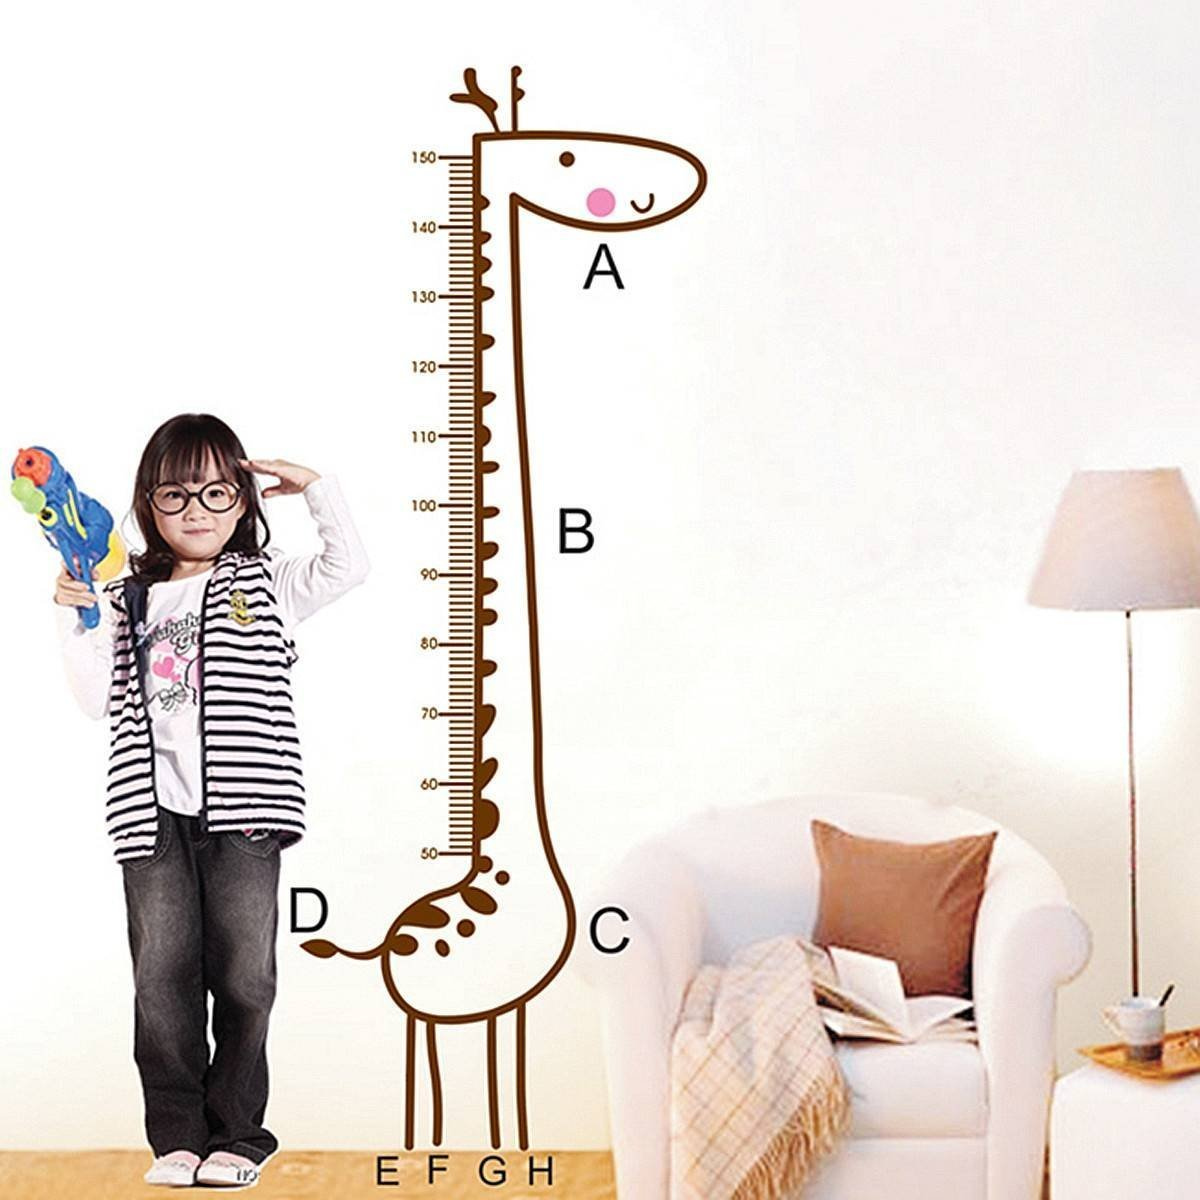 Cheap height chart wall find height chart wall deals on line at get quotations saver giraffe wall stickers kids children room growth chart height decal measure removable home decoration geenschuldenfo Image collections